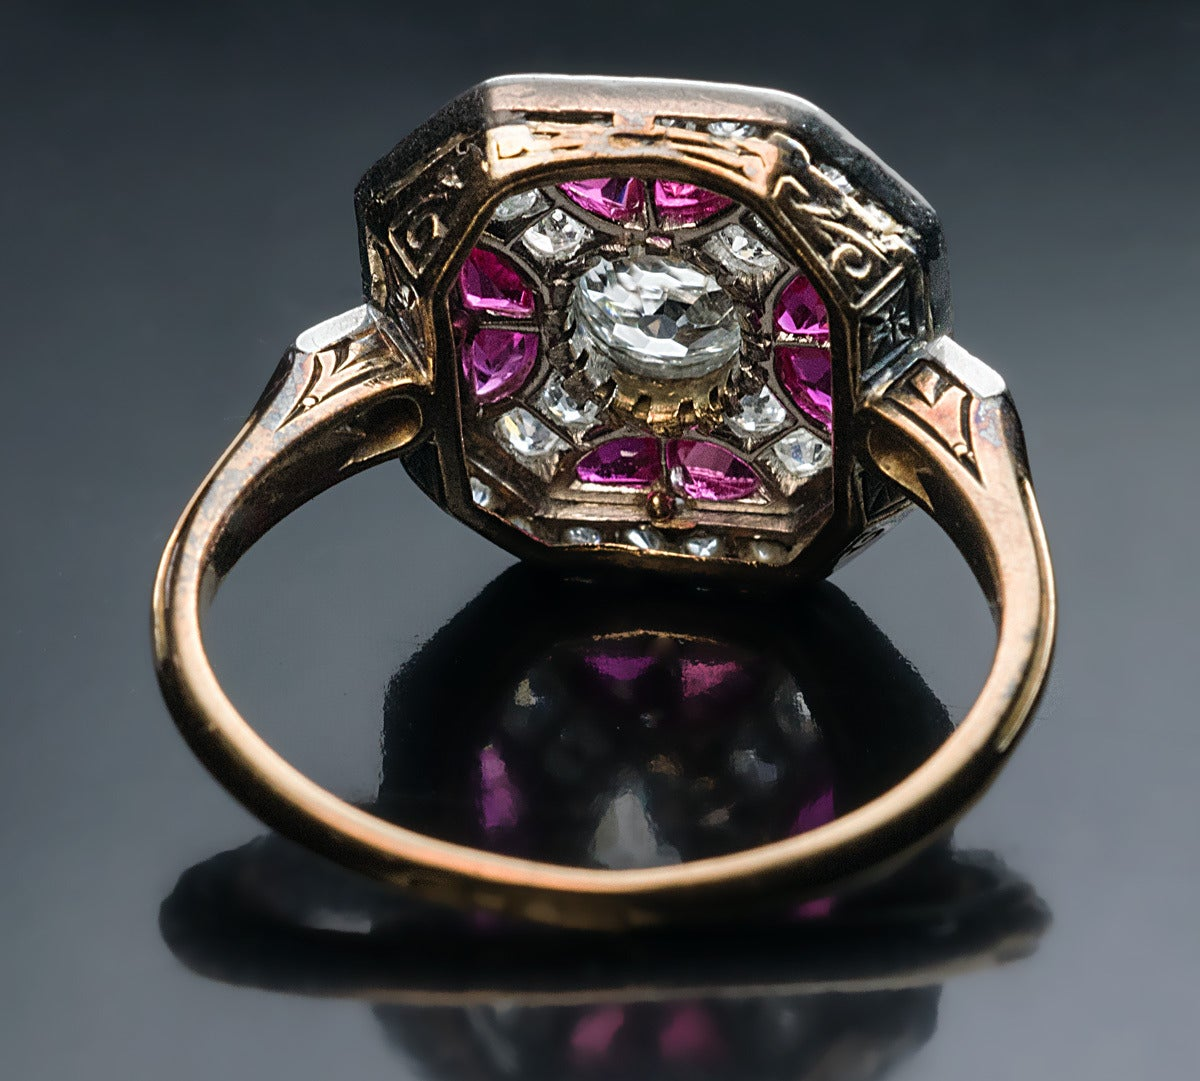 Russian Art Deco Ruby Diamond Platinum Ring For Sale 2